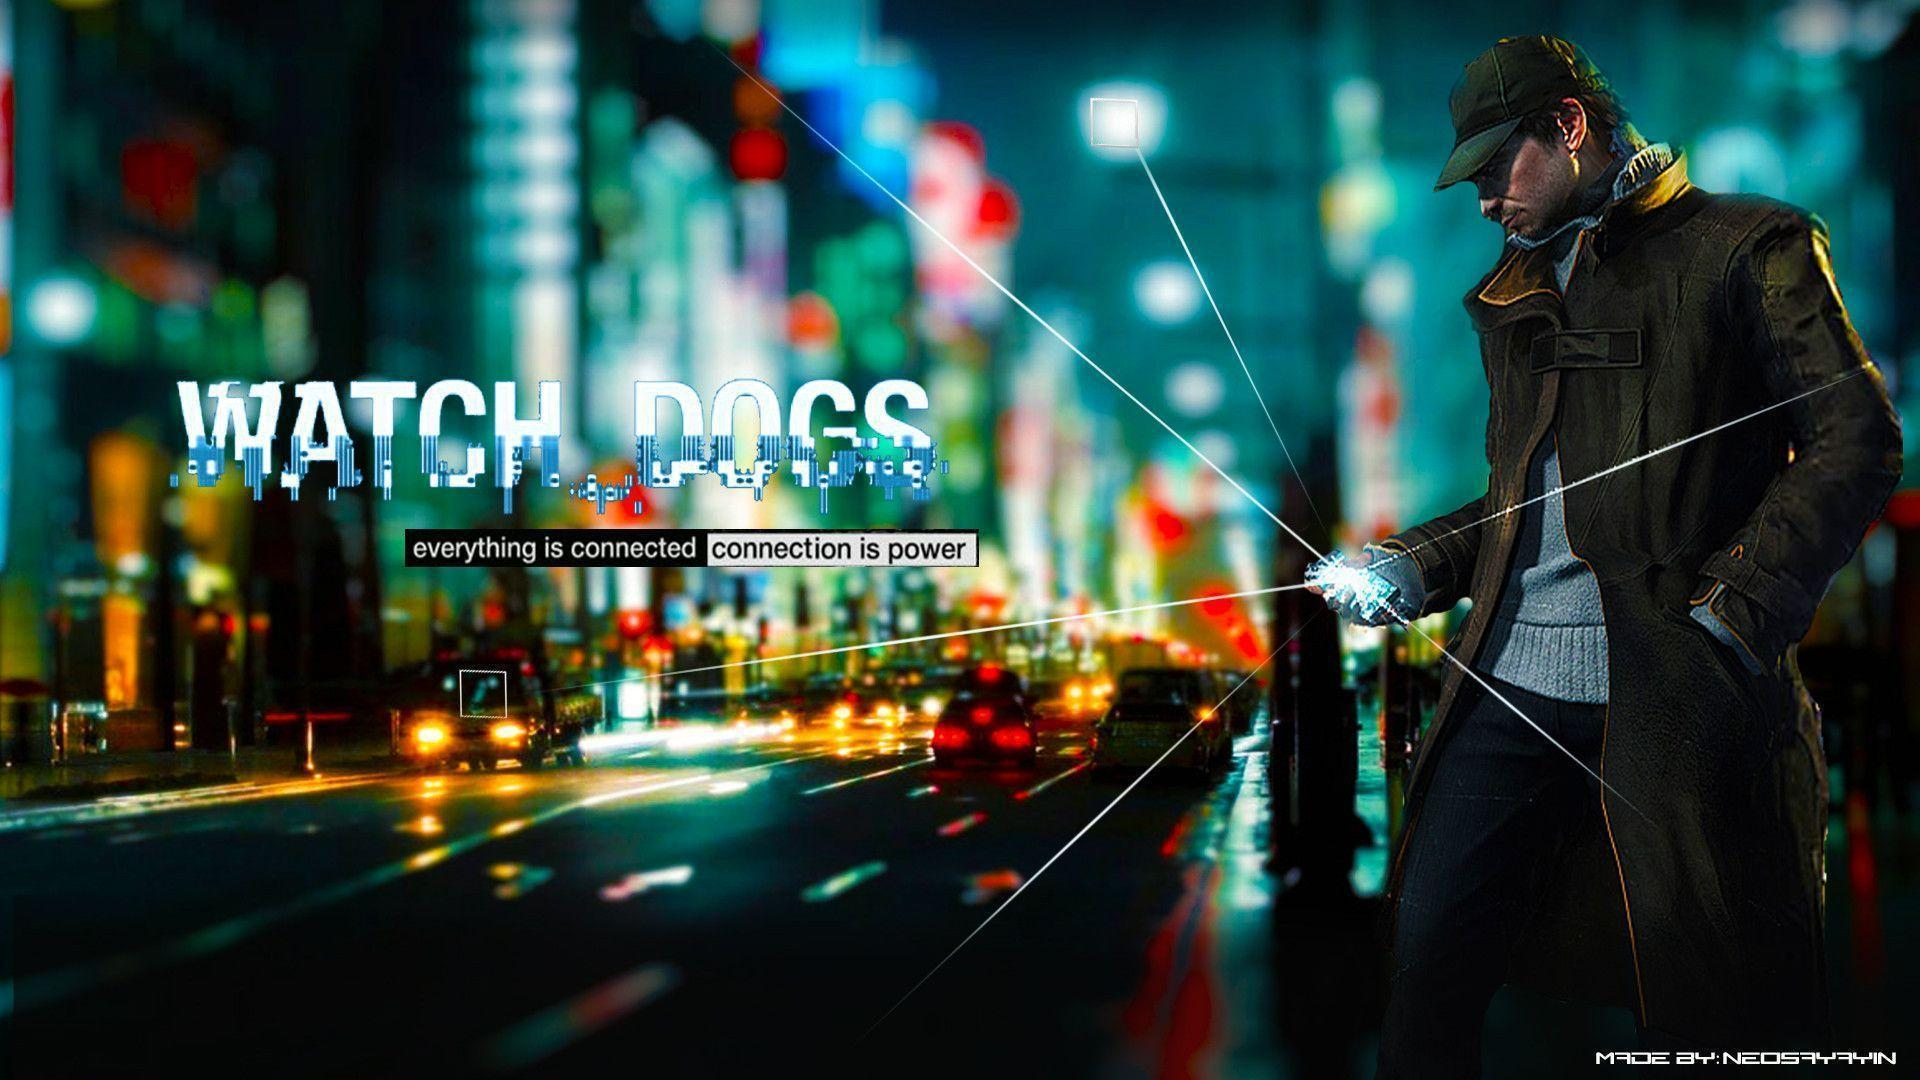 New Watch Dogs Game Wallpapers HD 1080p